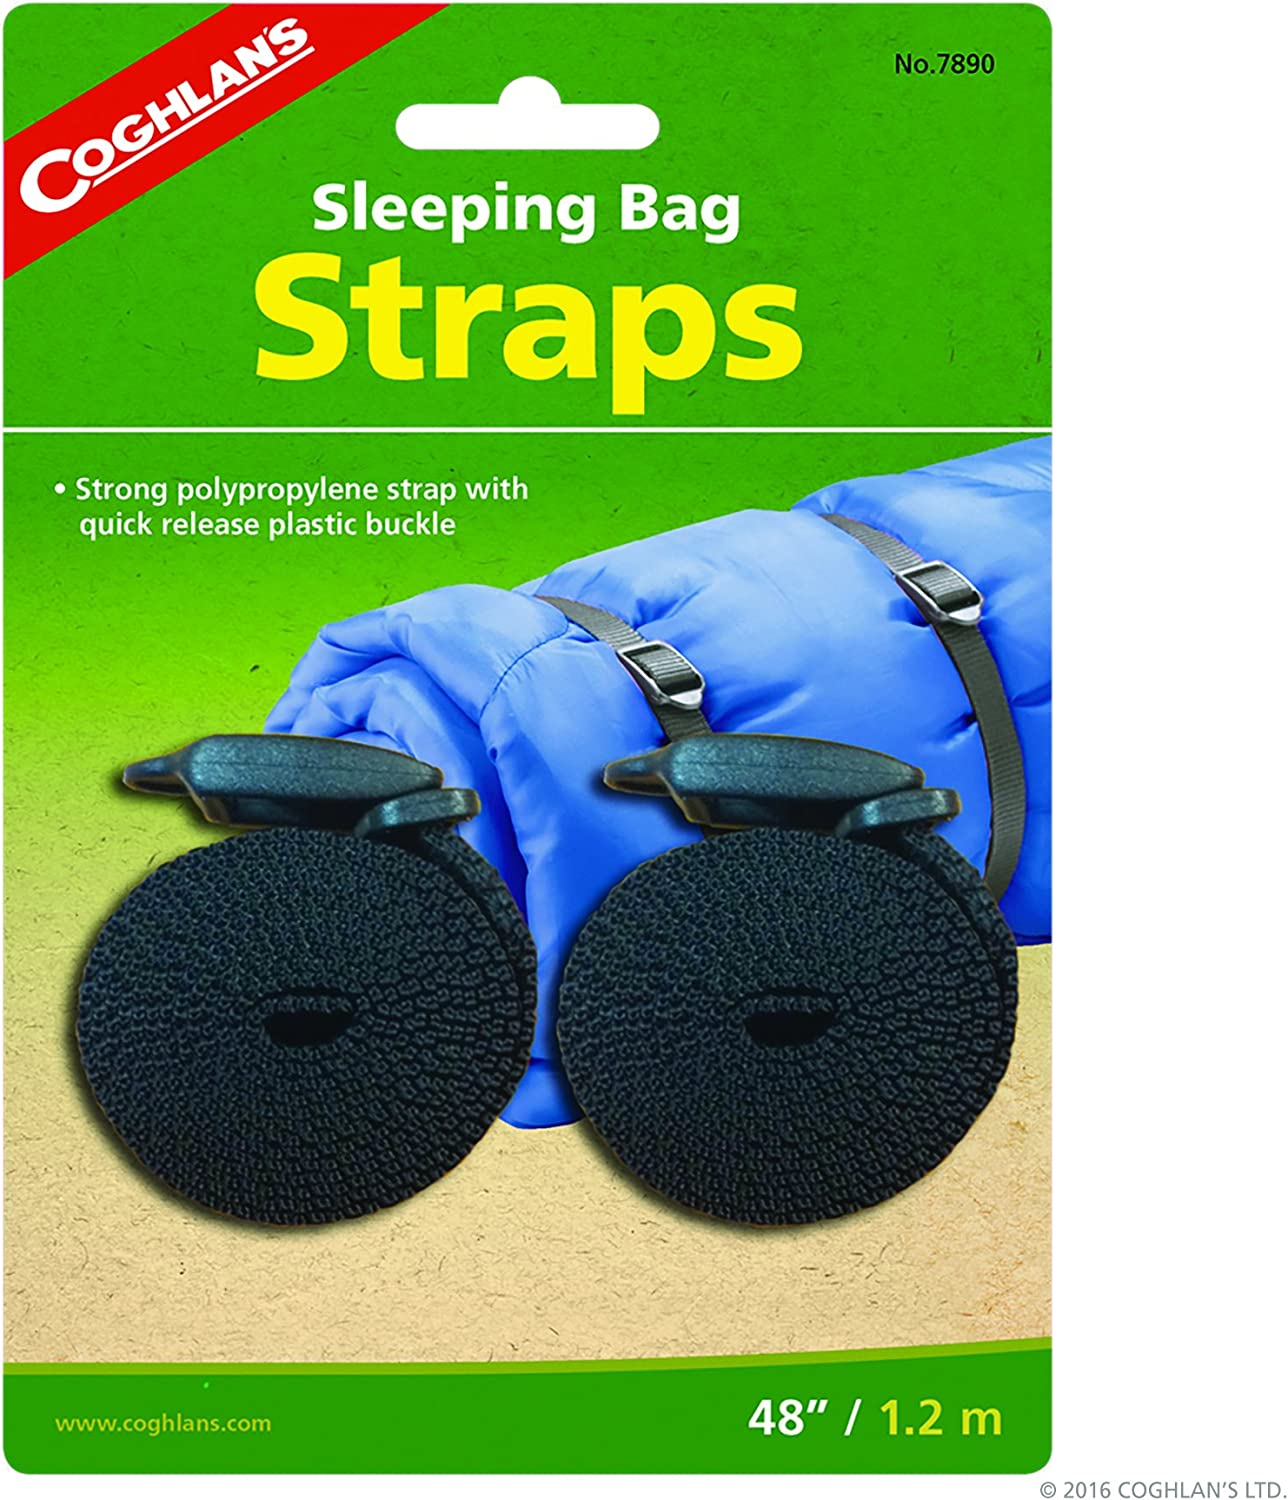 Coghlan's Sleeping Bag Straps : Compression Straps For Sleeping Bag : Sports & Outdoors